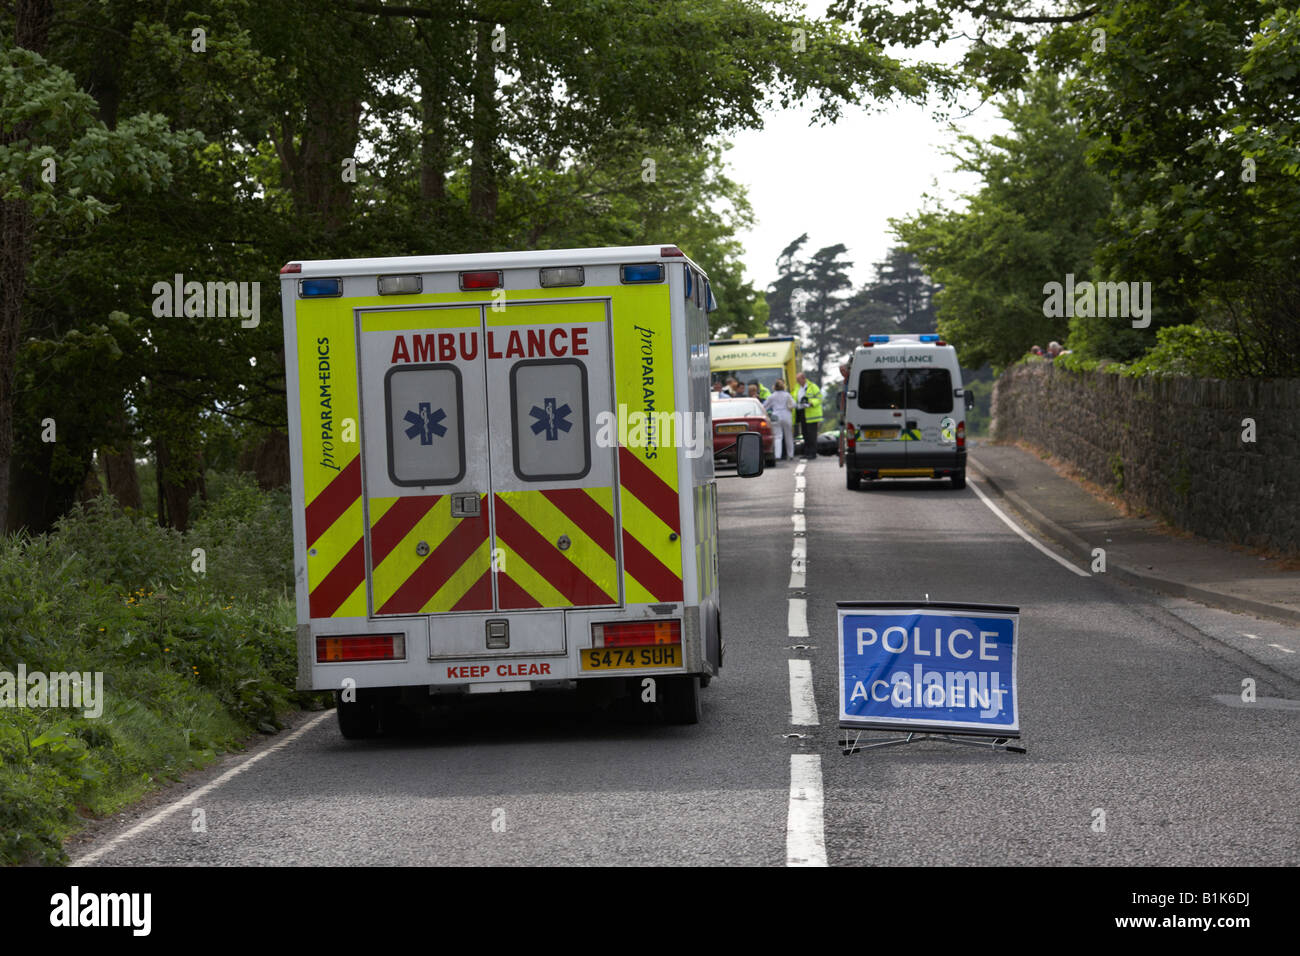 paramedic private ambulance passes police accident temporary sign in the middle of the road at the scene of a road - Stock Image